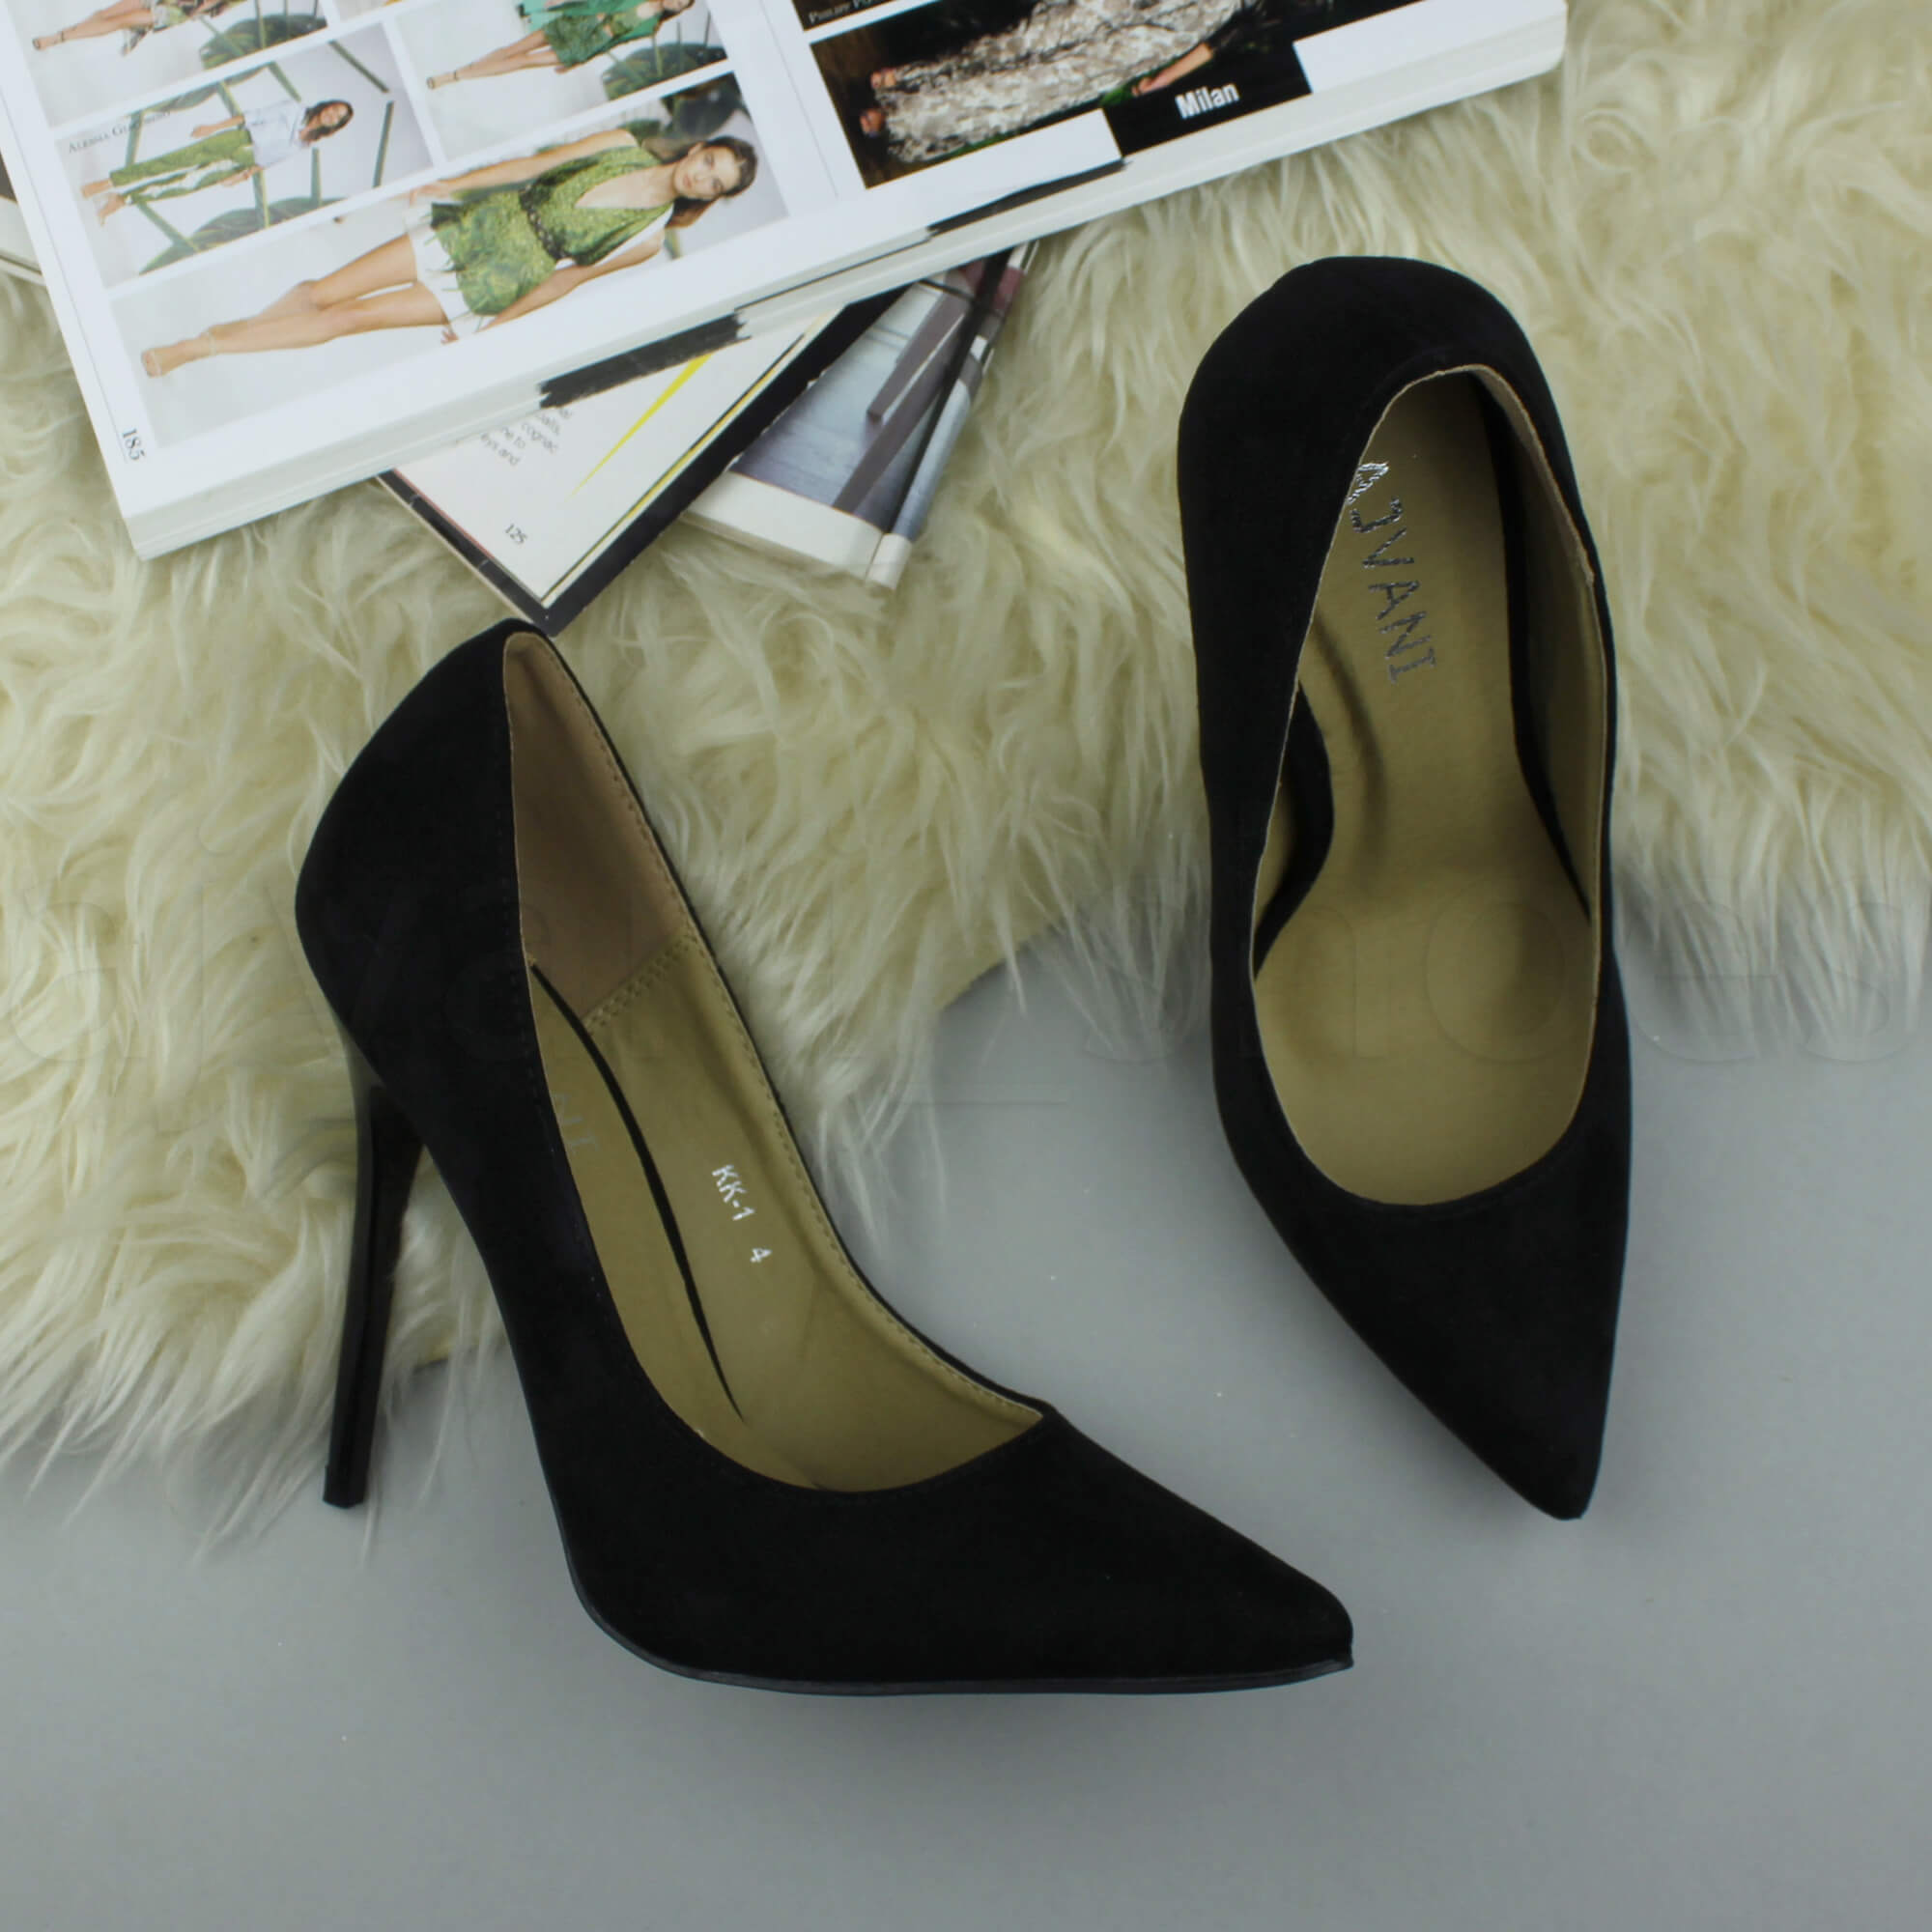 WOMENS-LADIES-HIGH-HEEL-POINTED-CONTRAST-COURT-SMART-PARTY-WORK-SHOES-PUMPS-SIZE thumbnail 29